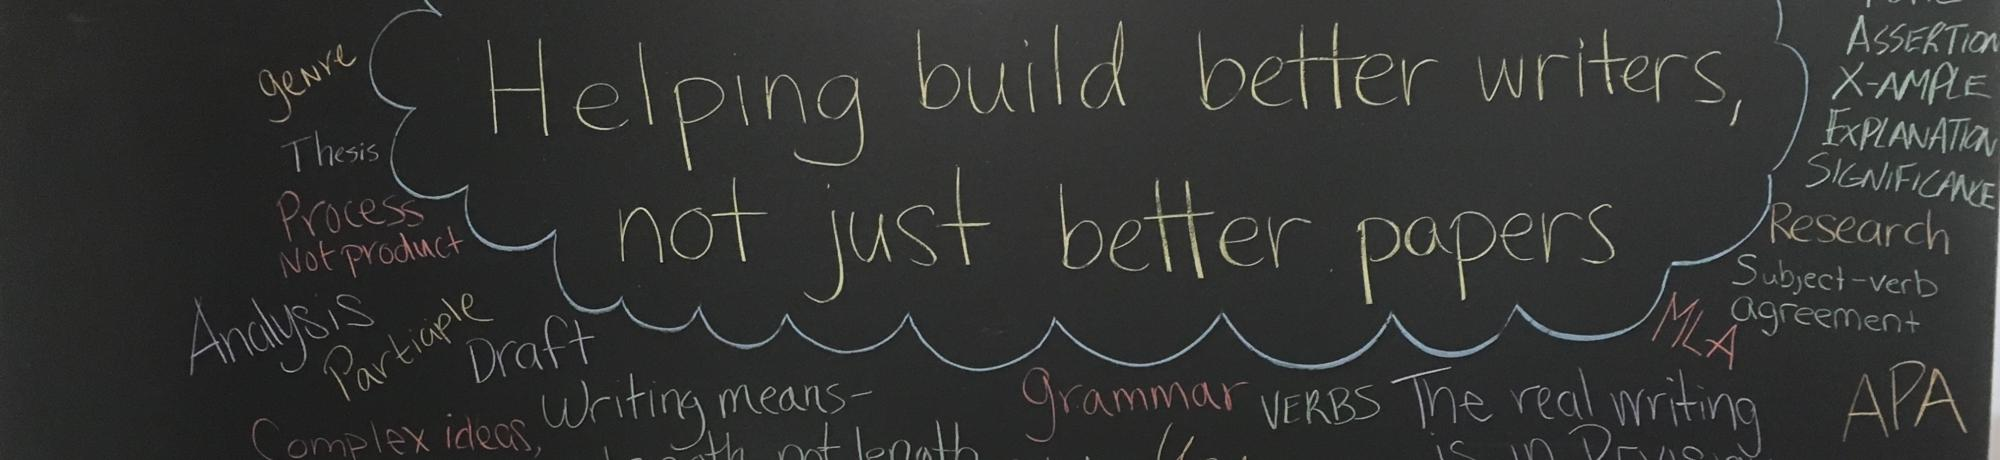 Chalkboard with our motto: Helping build better writers, not just better papers